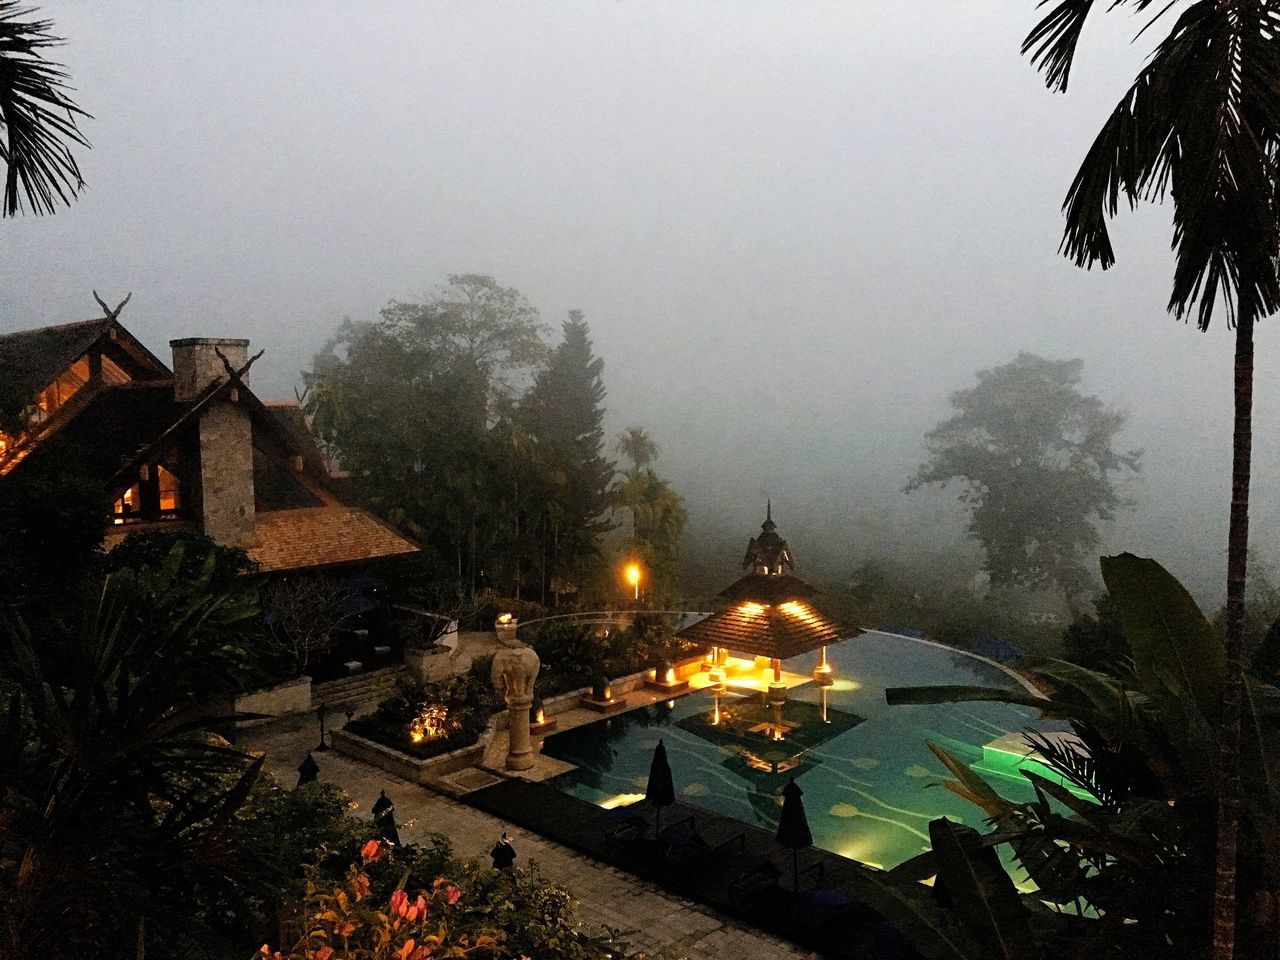 Building Exterior Architecture Built Structure Fog House Foggy Outdoors New Year's Eve 2015 Beauty In Nature winter in thailand North Of Thailand six stars hotel New Year Kick Off happy Elephant Nature Park resort elephant camp Sky Tourism Tranquility